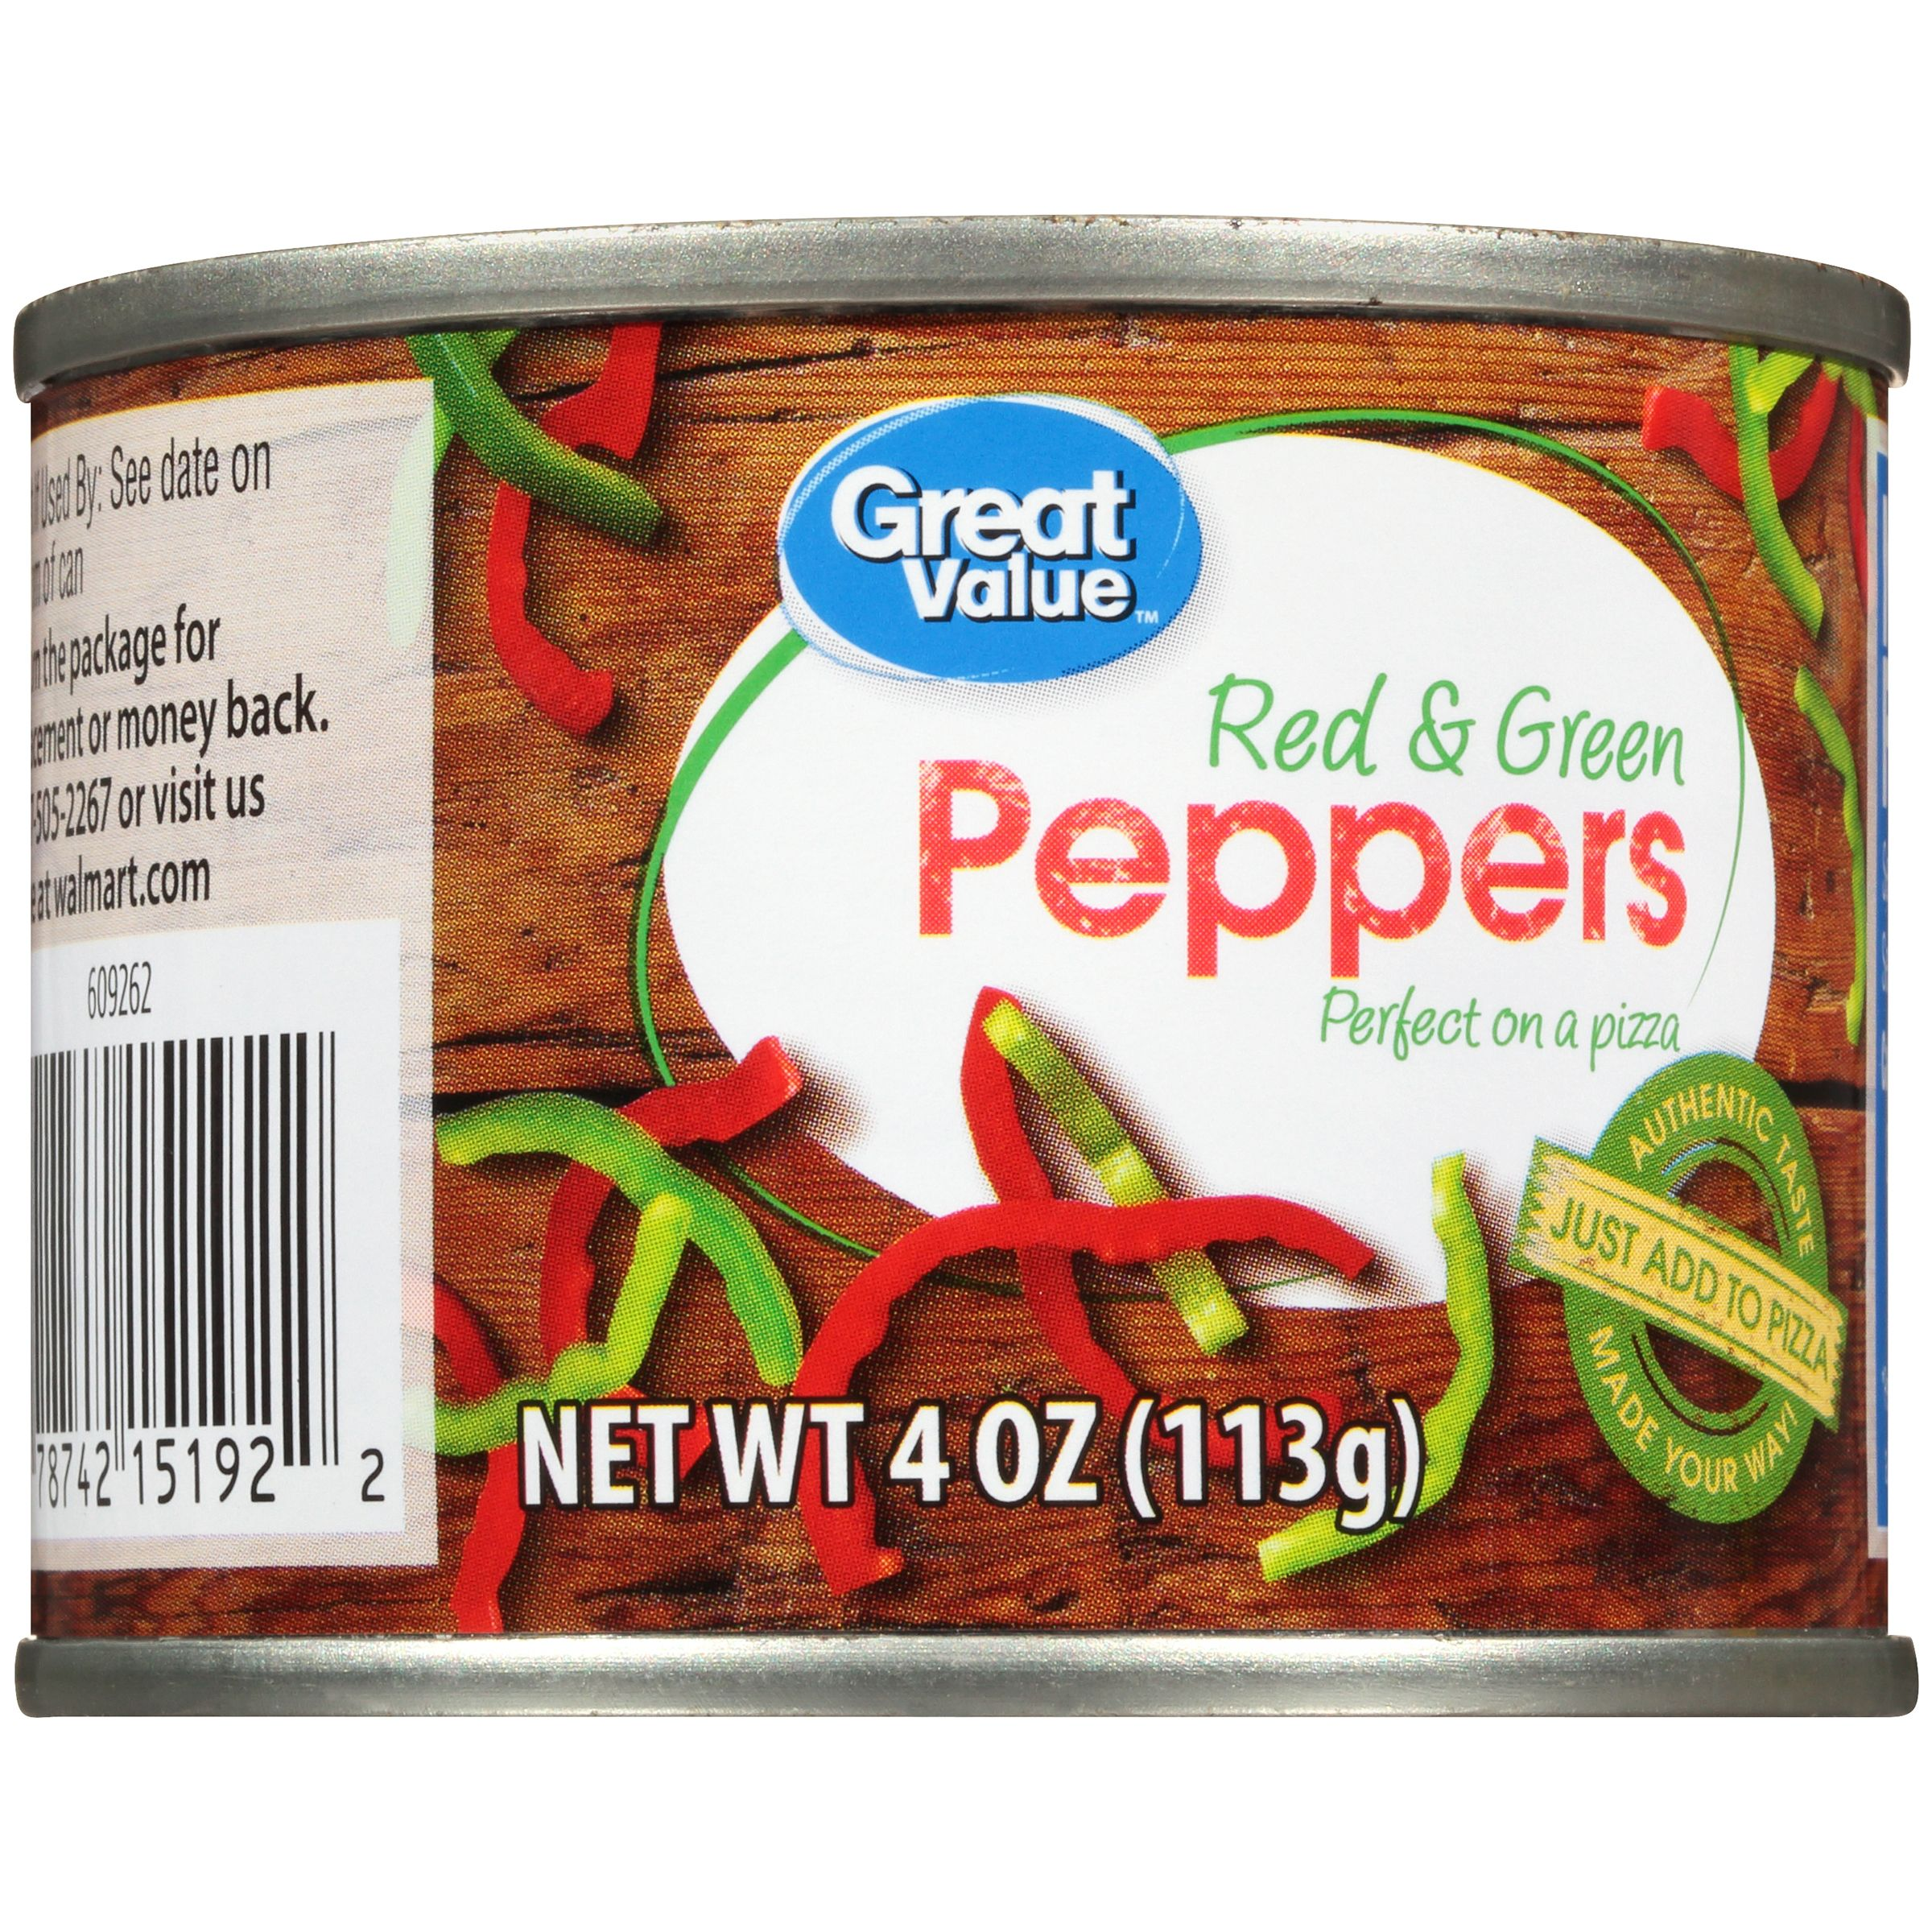 (5 Pack) Great Value Red & Green Peppers, 4 oz